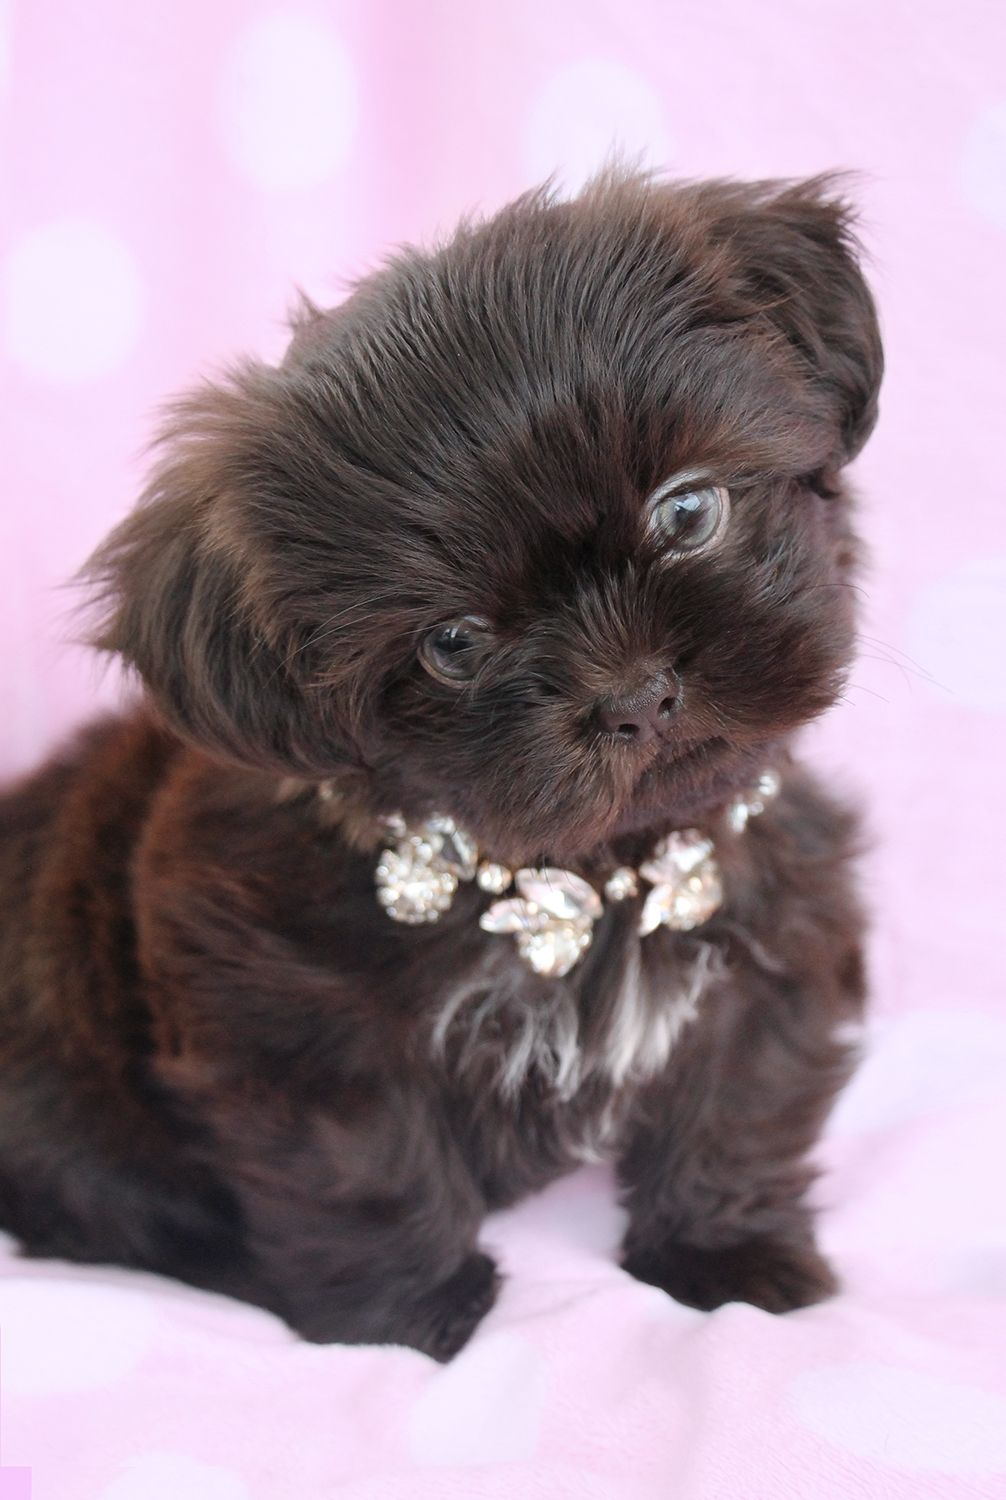 Yorkie Shih Tzu mix animals Pinterest Shih tzu